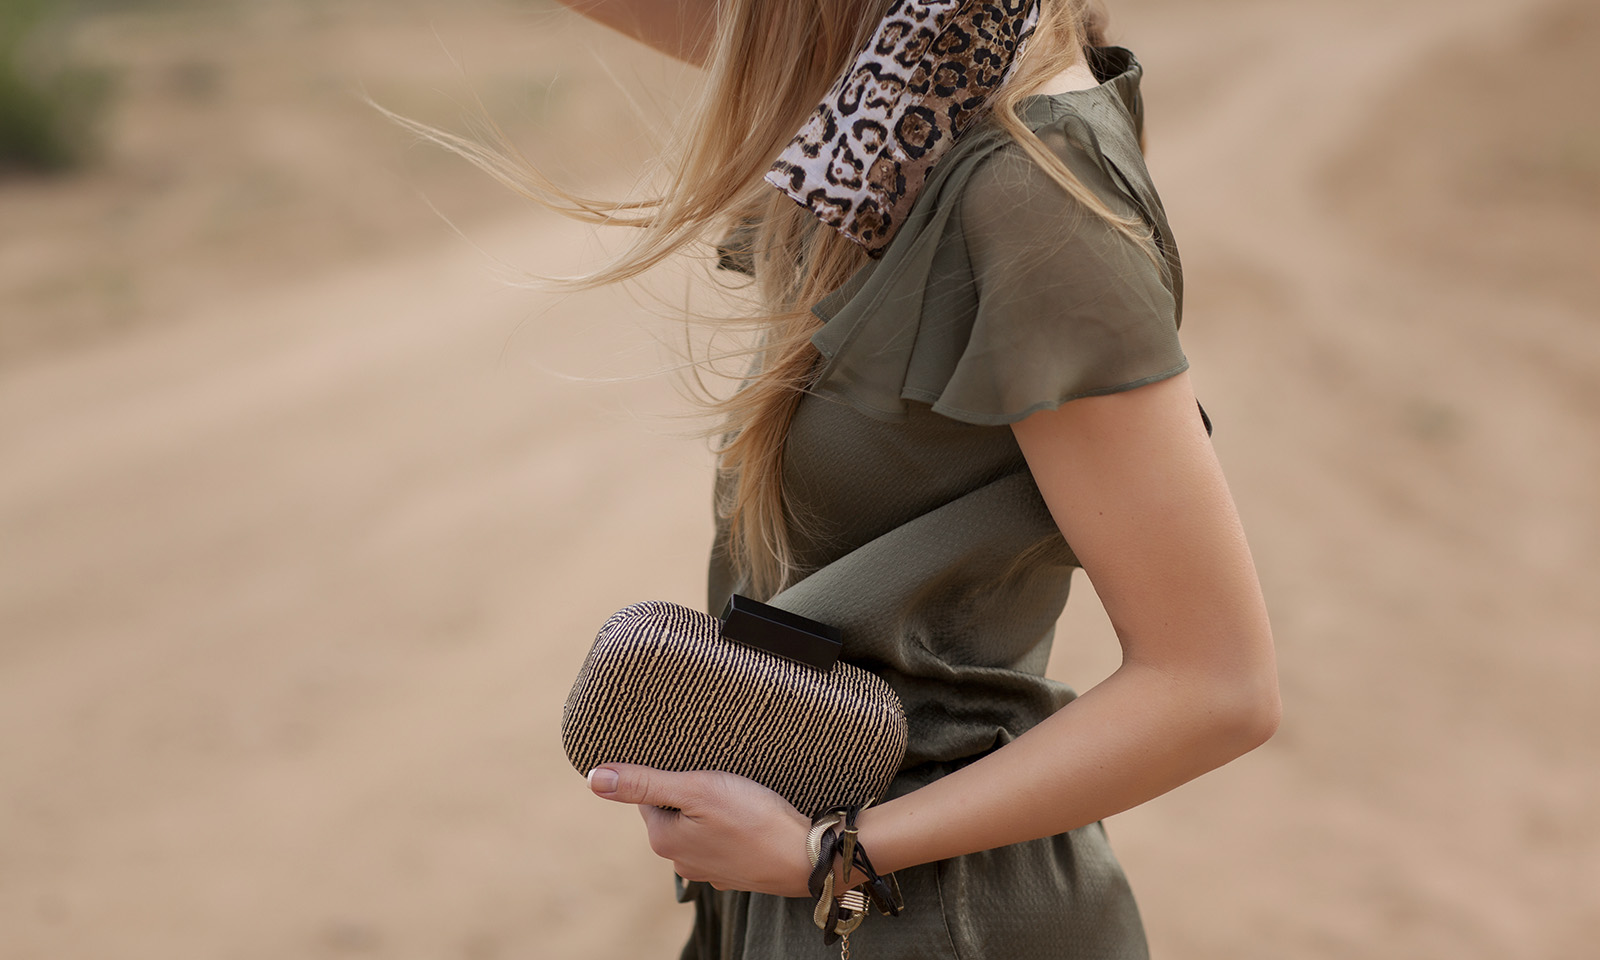 fashion-tips-on-how-to-make-an-outfit-stand-out-main-image-fashionable-outfit-with-accessories